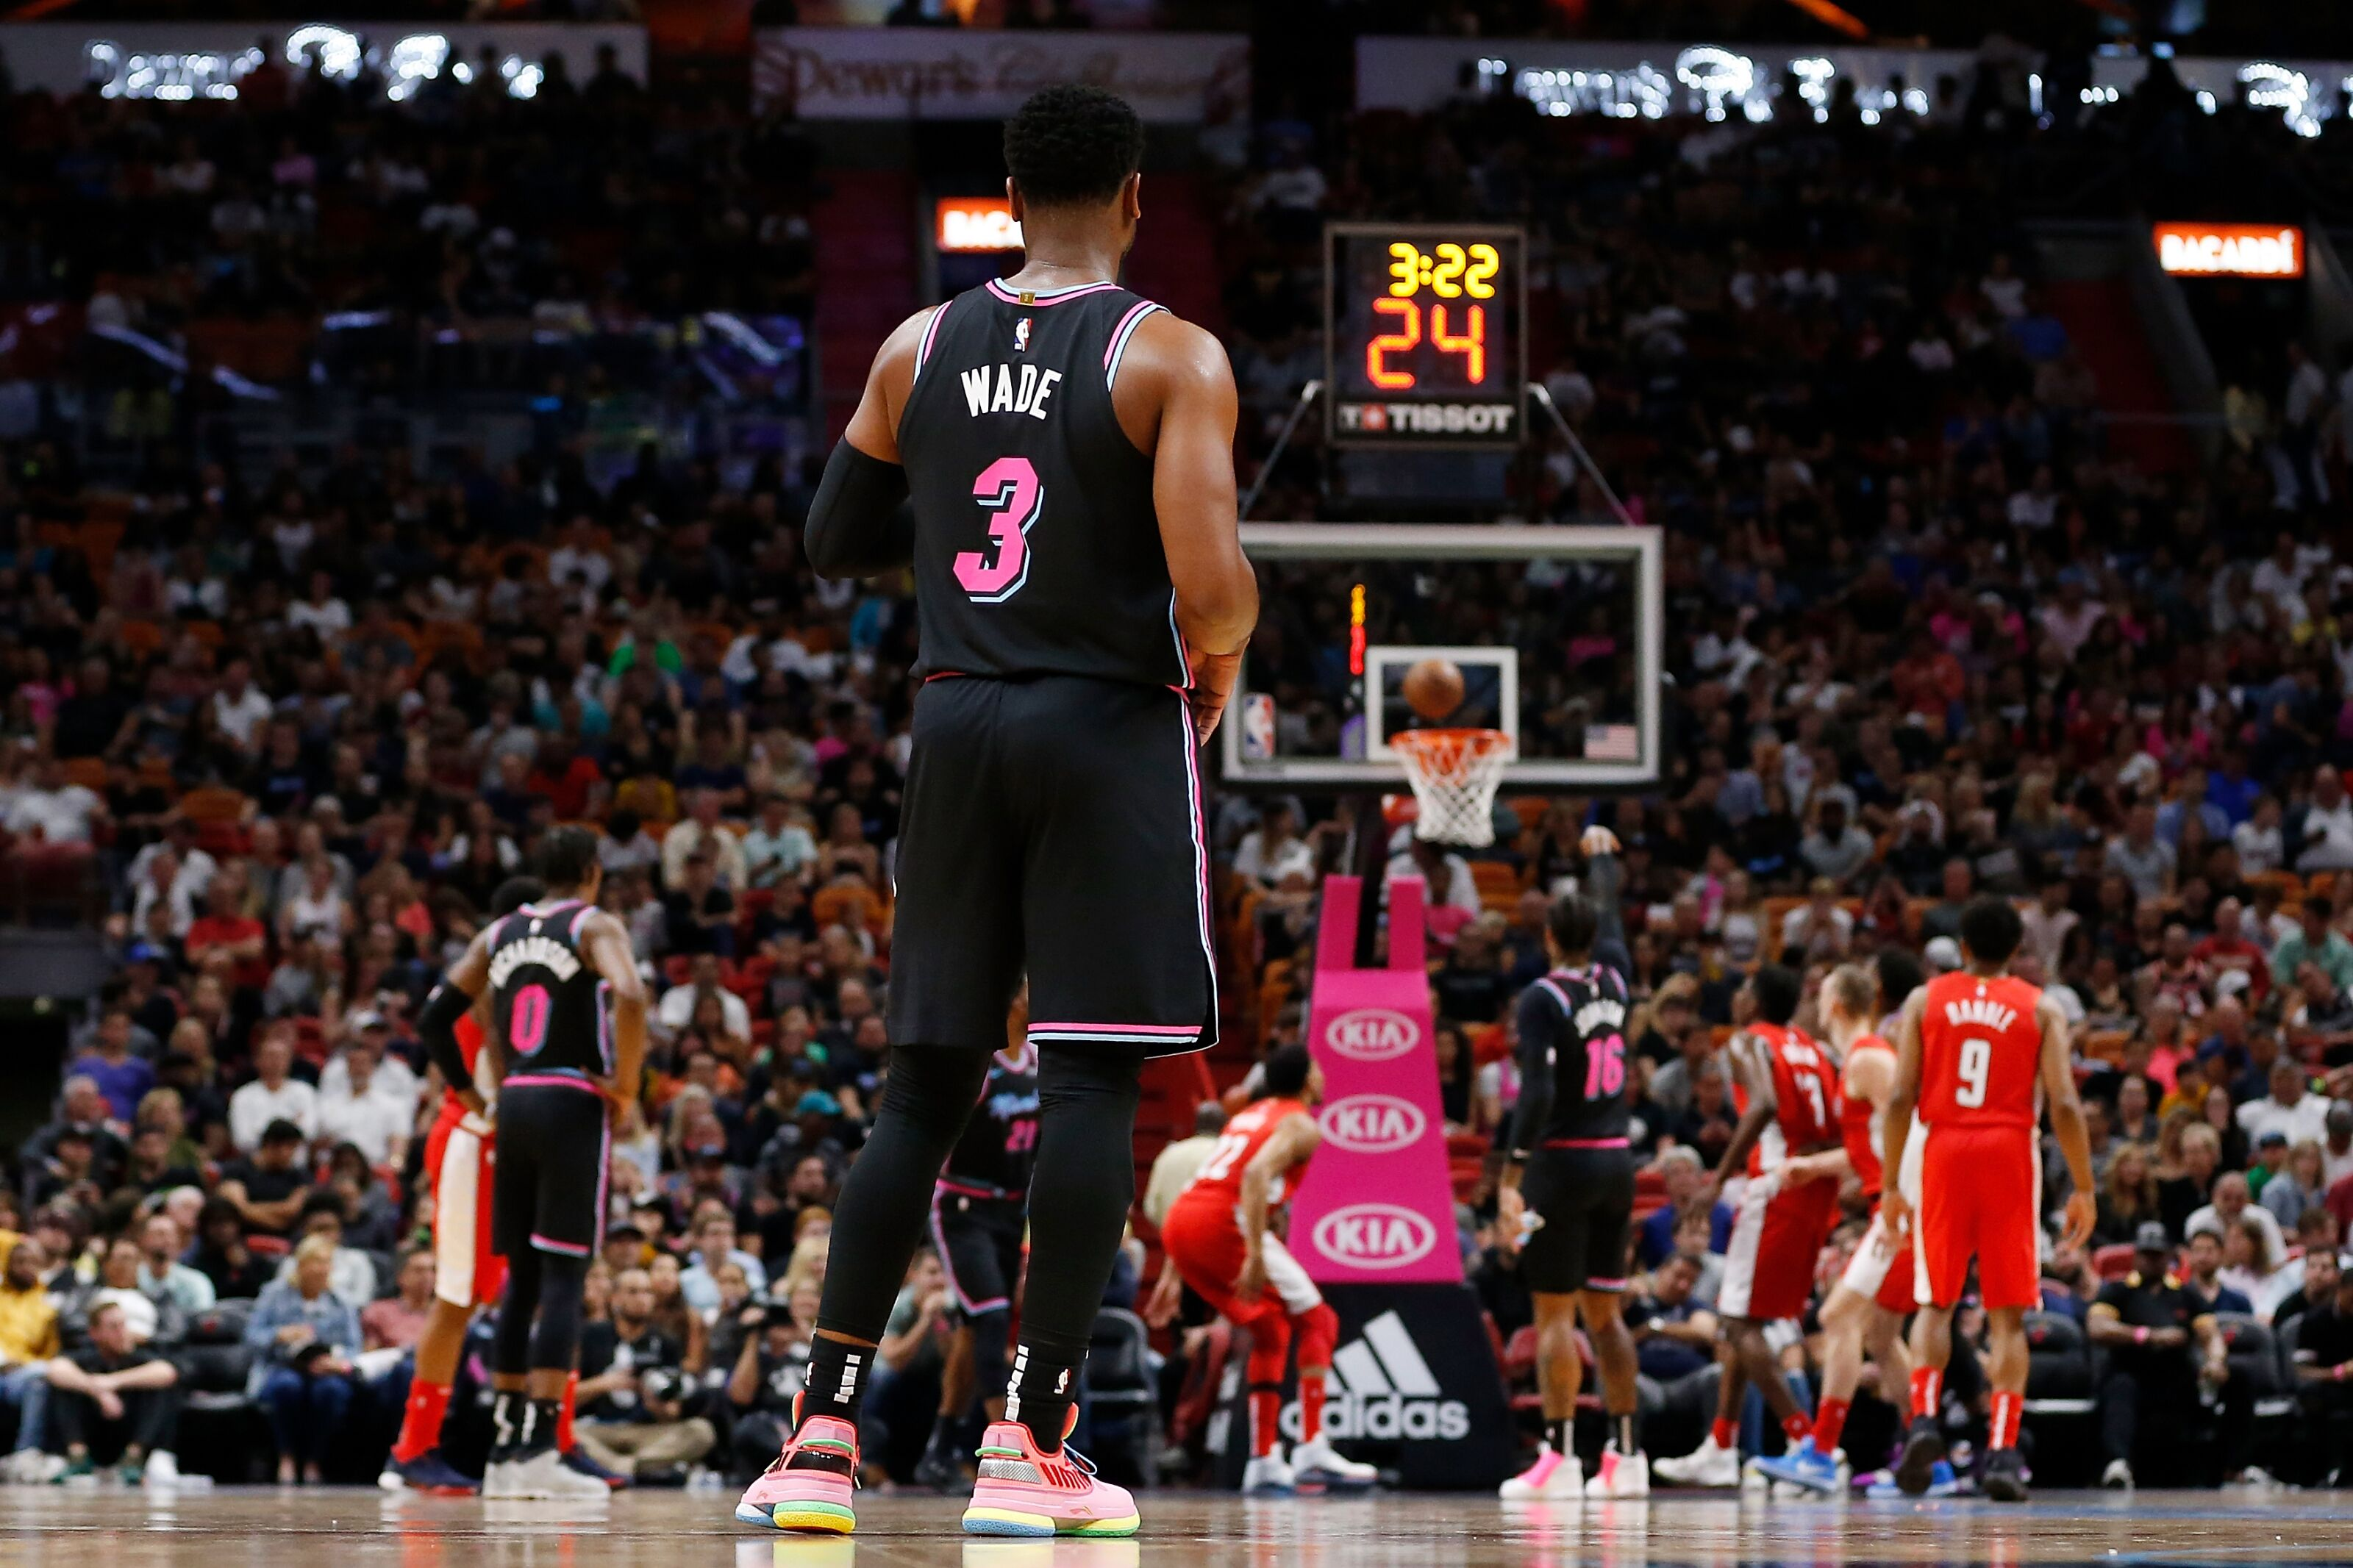 Miami Heat: Dwyane Wade doesn't think he should be an All-Star